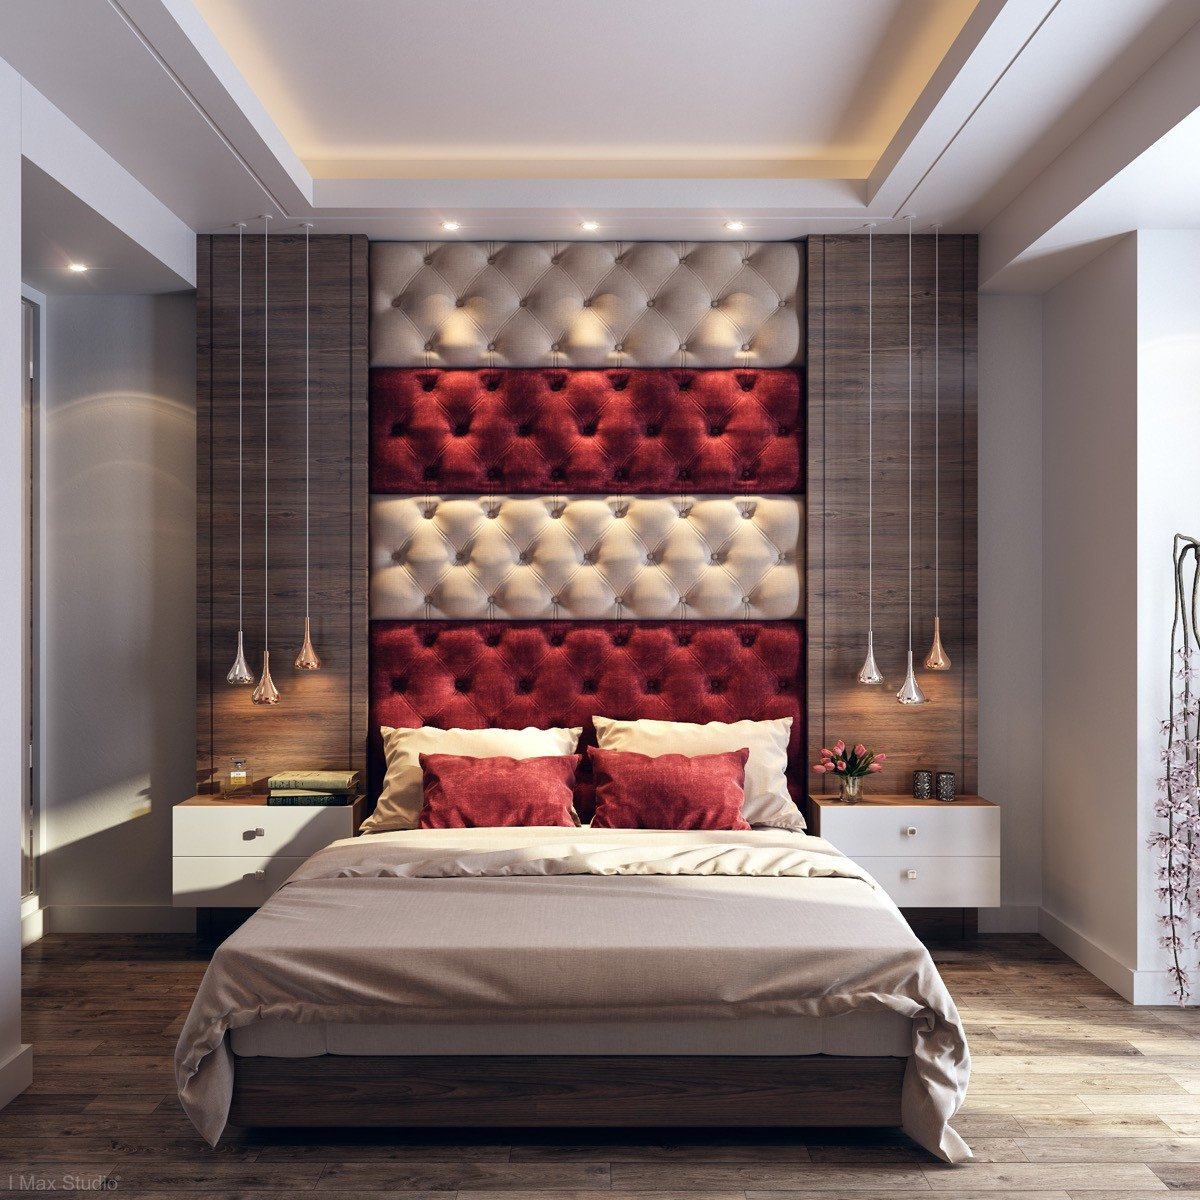 Red and Gray Bedroom Ideas Luxury 51 Red Bedrooms with Tips and Accessories to Help You Design